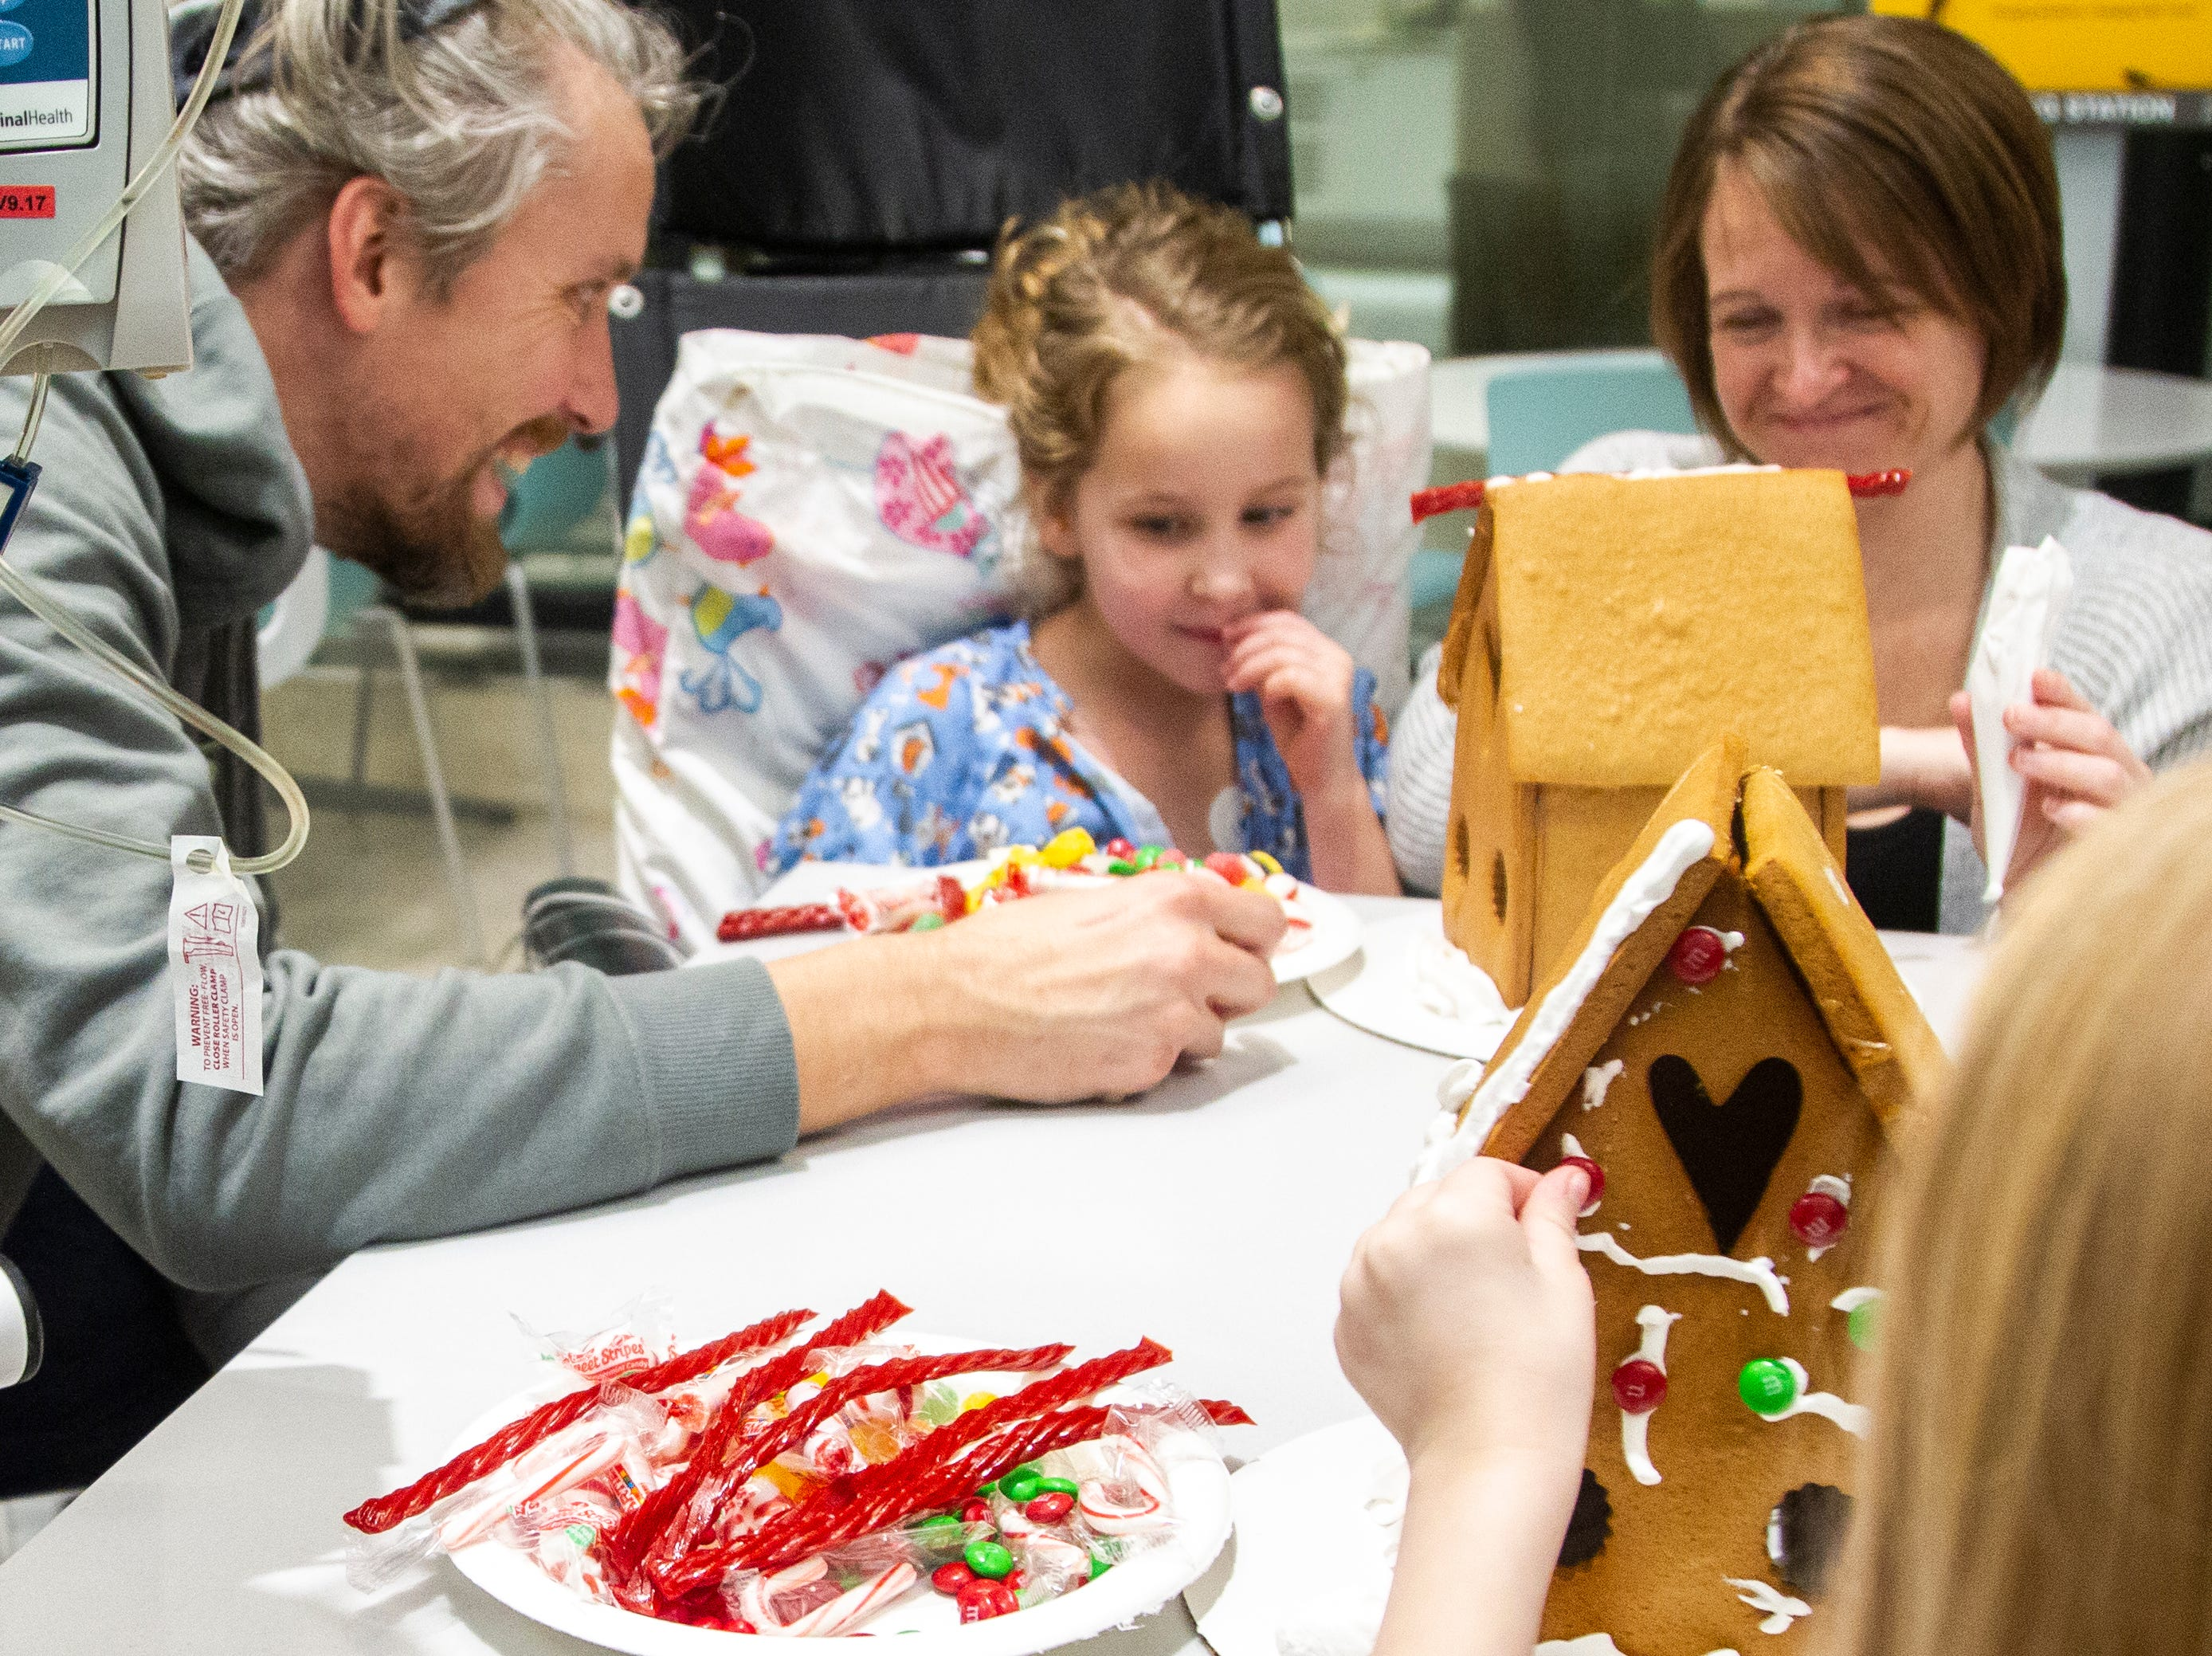 Ava Kruse (far right) places candy on a gingerbread hosue while John, Wrenlie and Kristie Bixler decorate a house at an event on Tuesday, Dec. 18, 2018, at the Stead Family Children's Hospital in Iowa City.